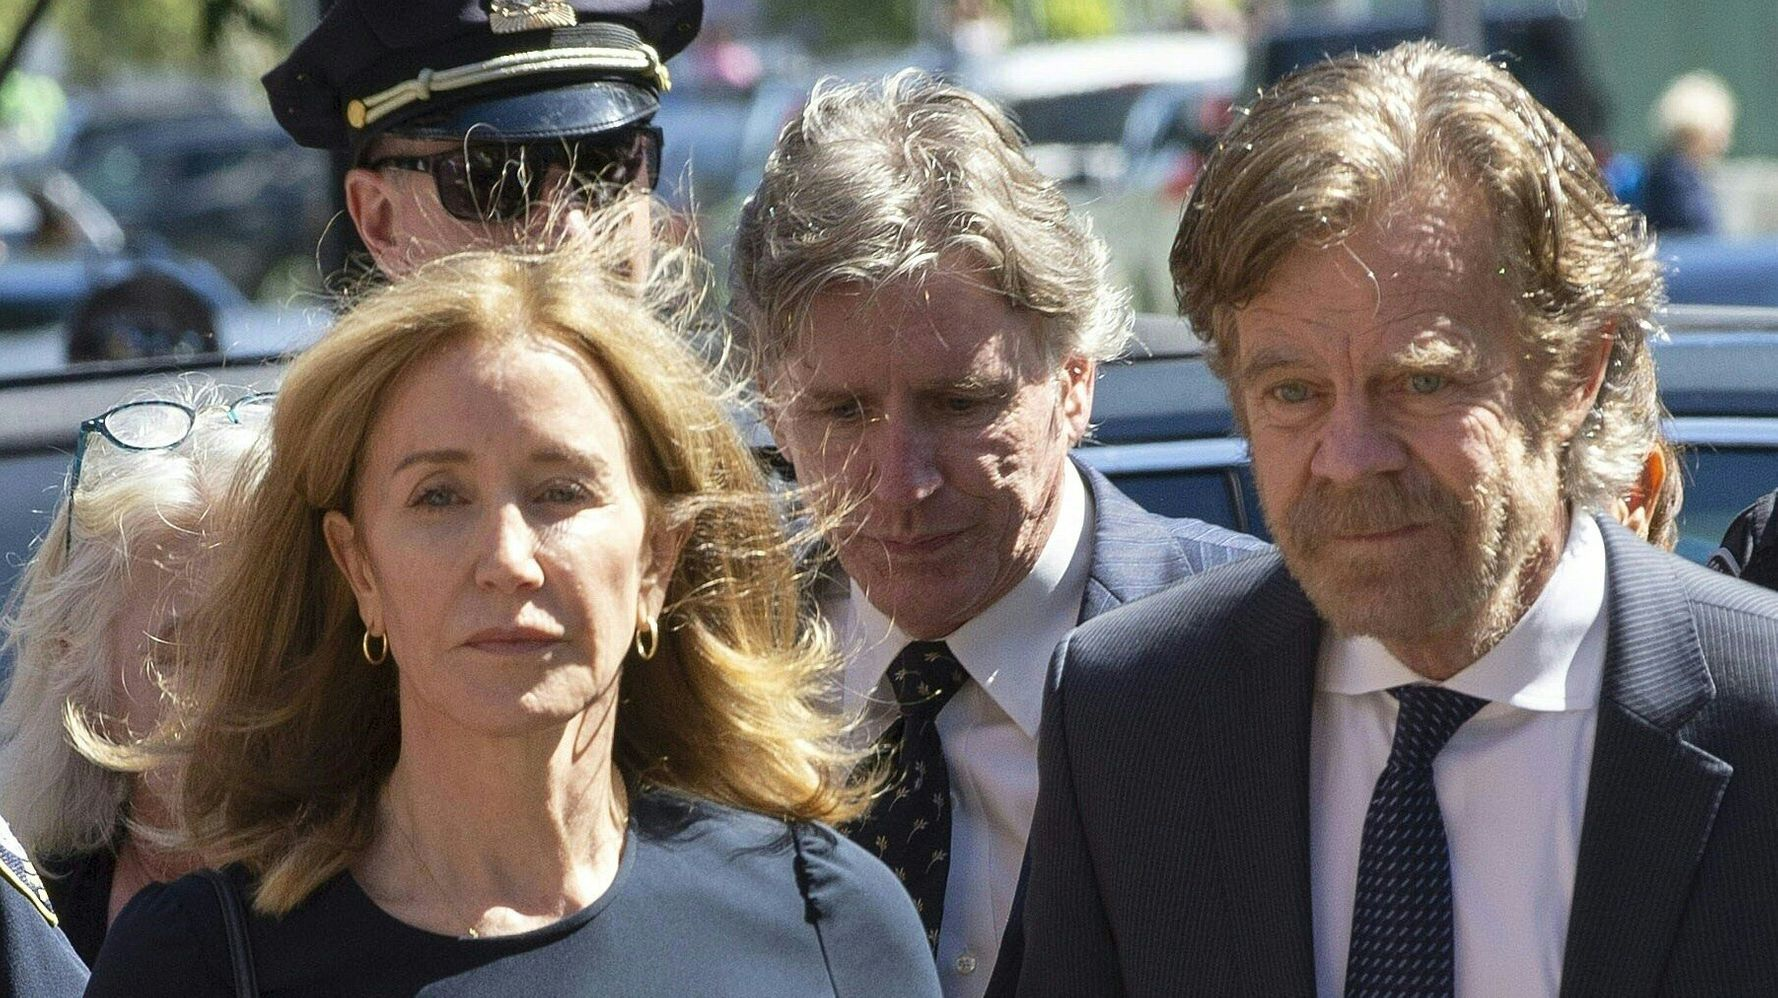 Westlake Legal Group 5dad7a84210000621b34a8b5 See Felicity Huffman In Her Prison Uniform As William H. Macy Visits